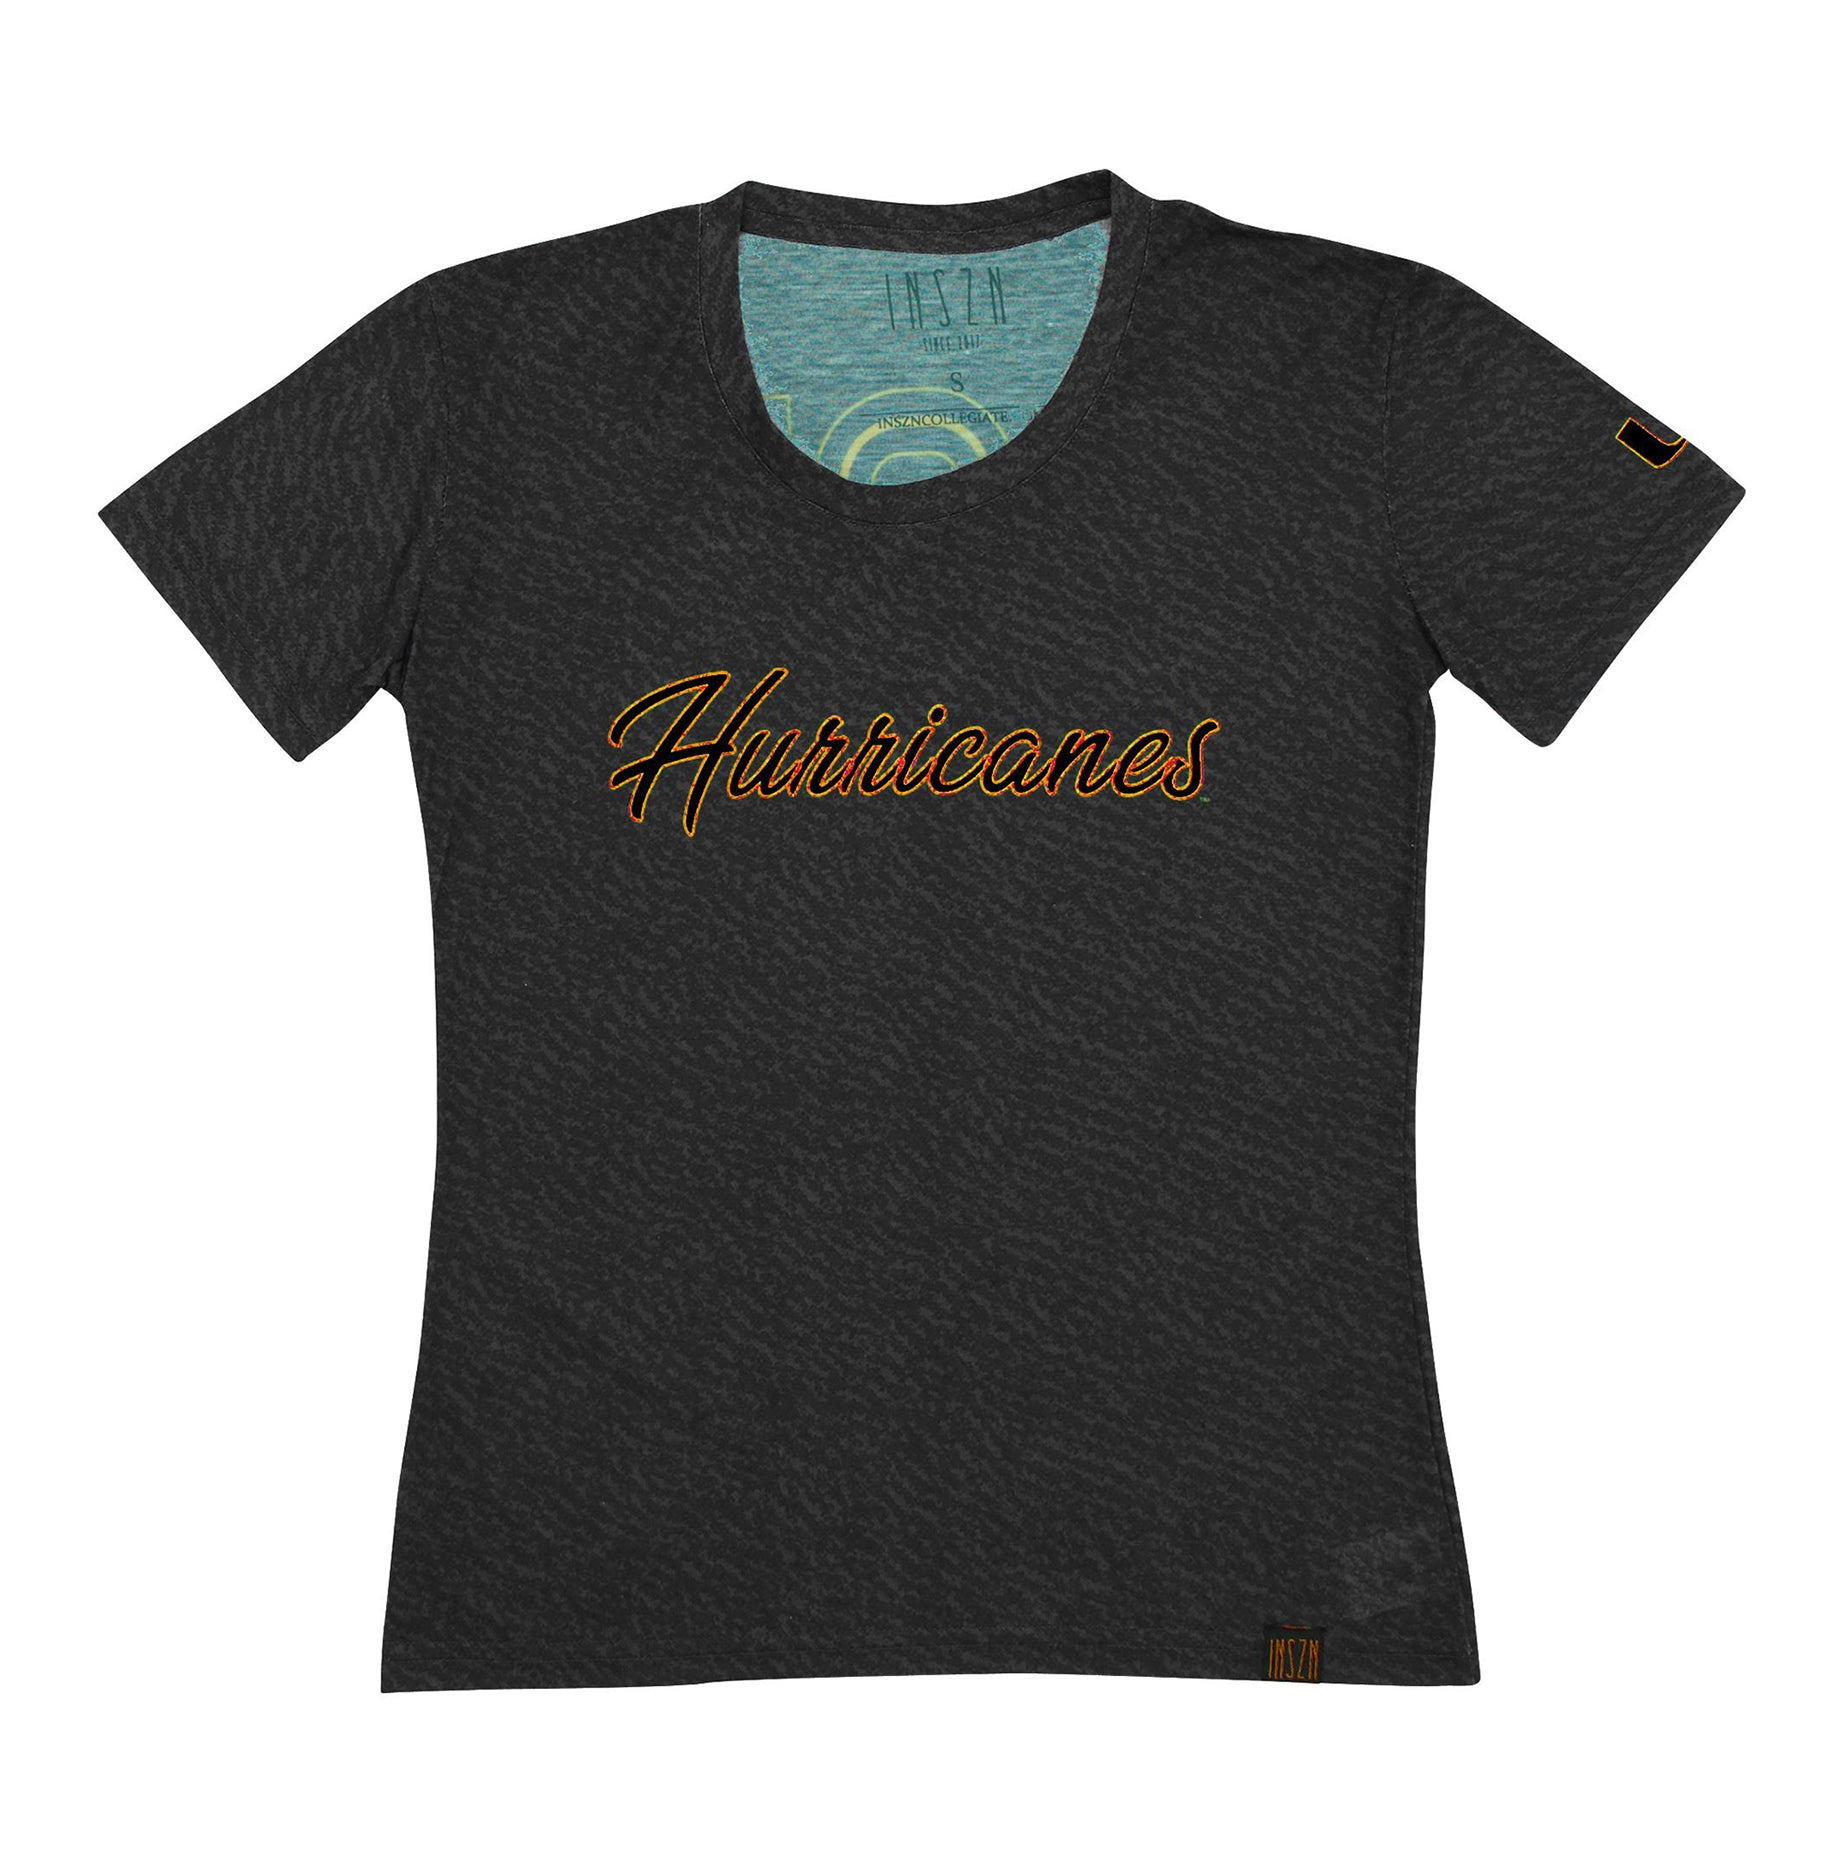 305 Blackout Women's Hurricanes Shirt